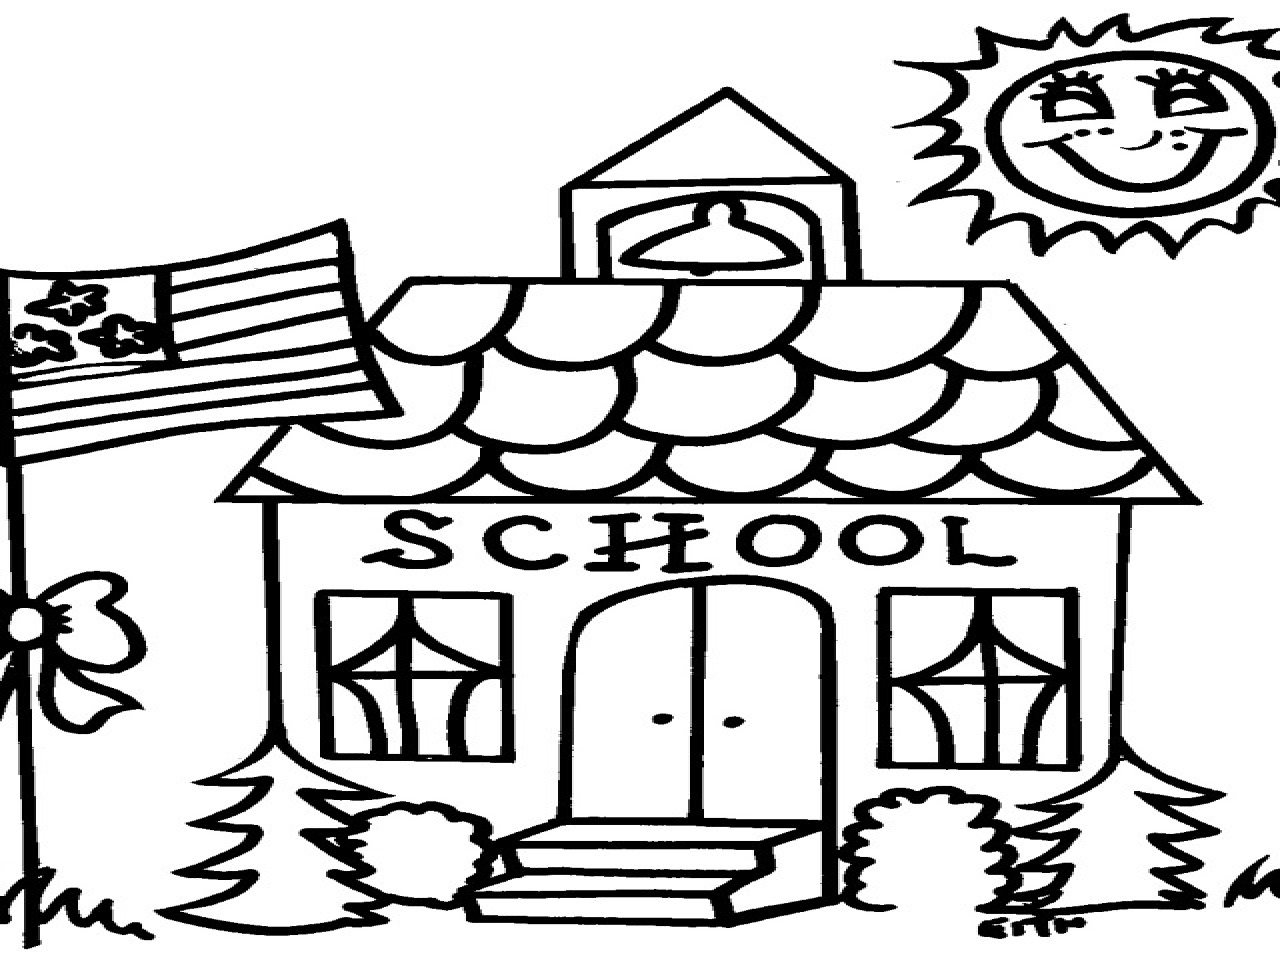 Schoolhouse Coloring Pages Printables School House Page Grig3 Gallery Of Fresh First Day School Coloring Sheets Free Printable Pages Kids Printable